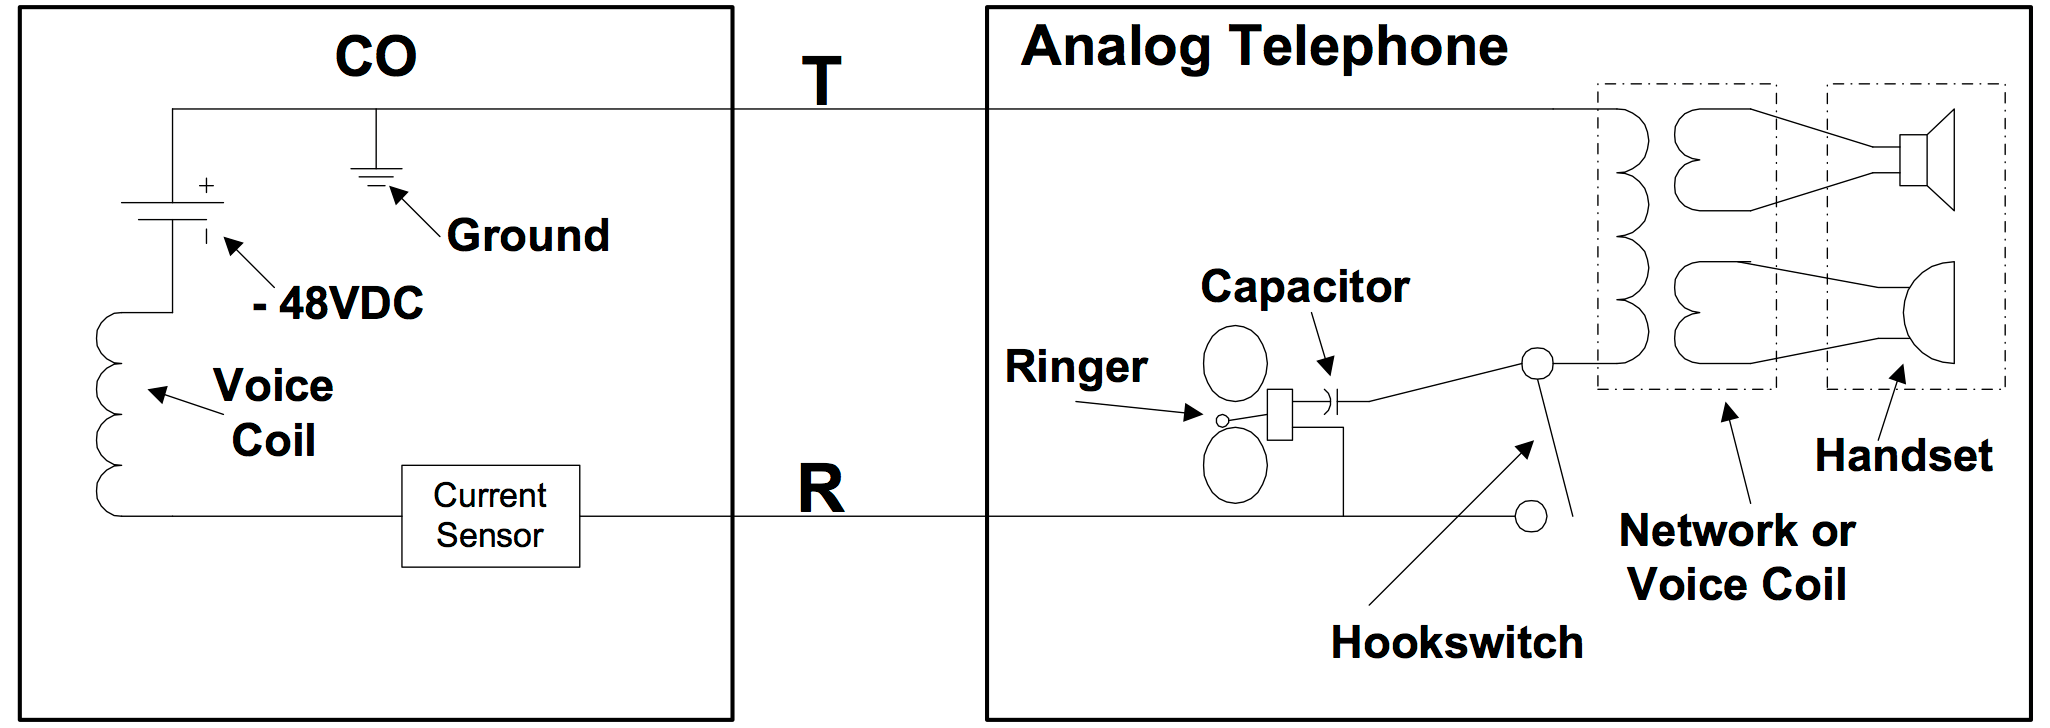 fig 5 all about analog lines Residential Telephone Wiring Diagram at bayanpartner.co